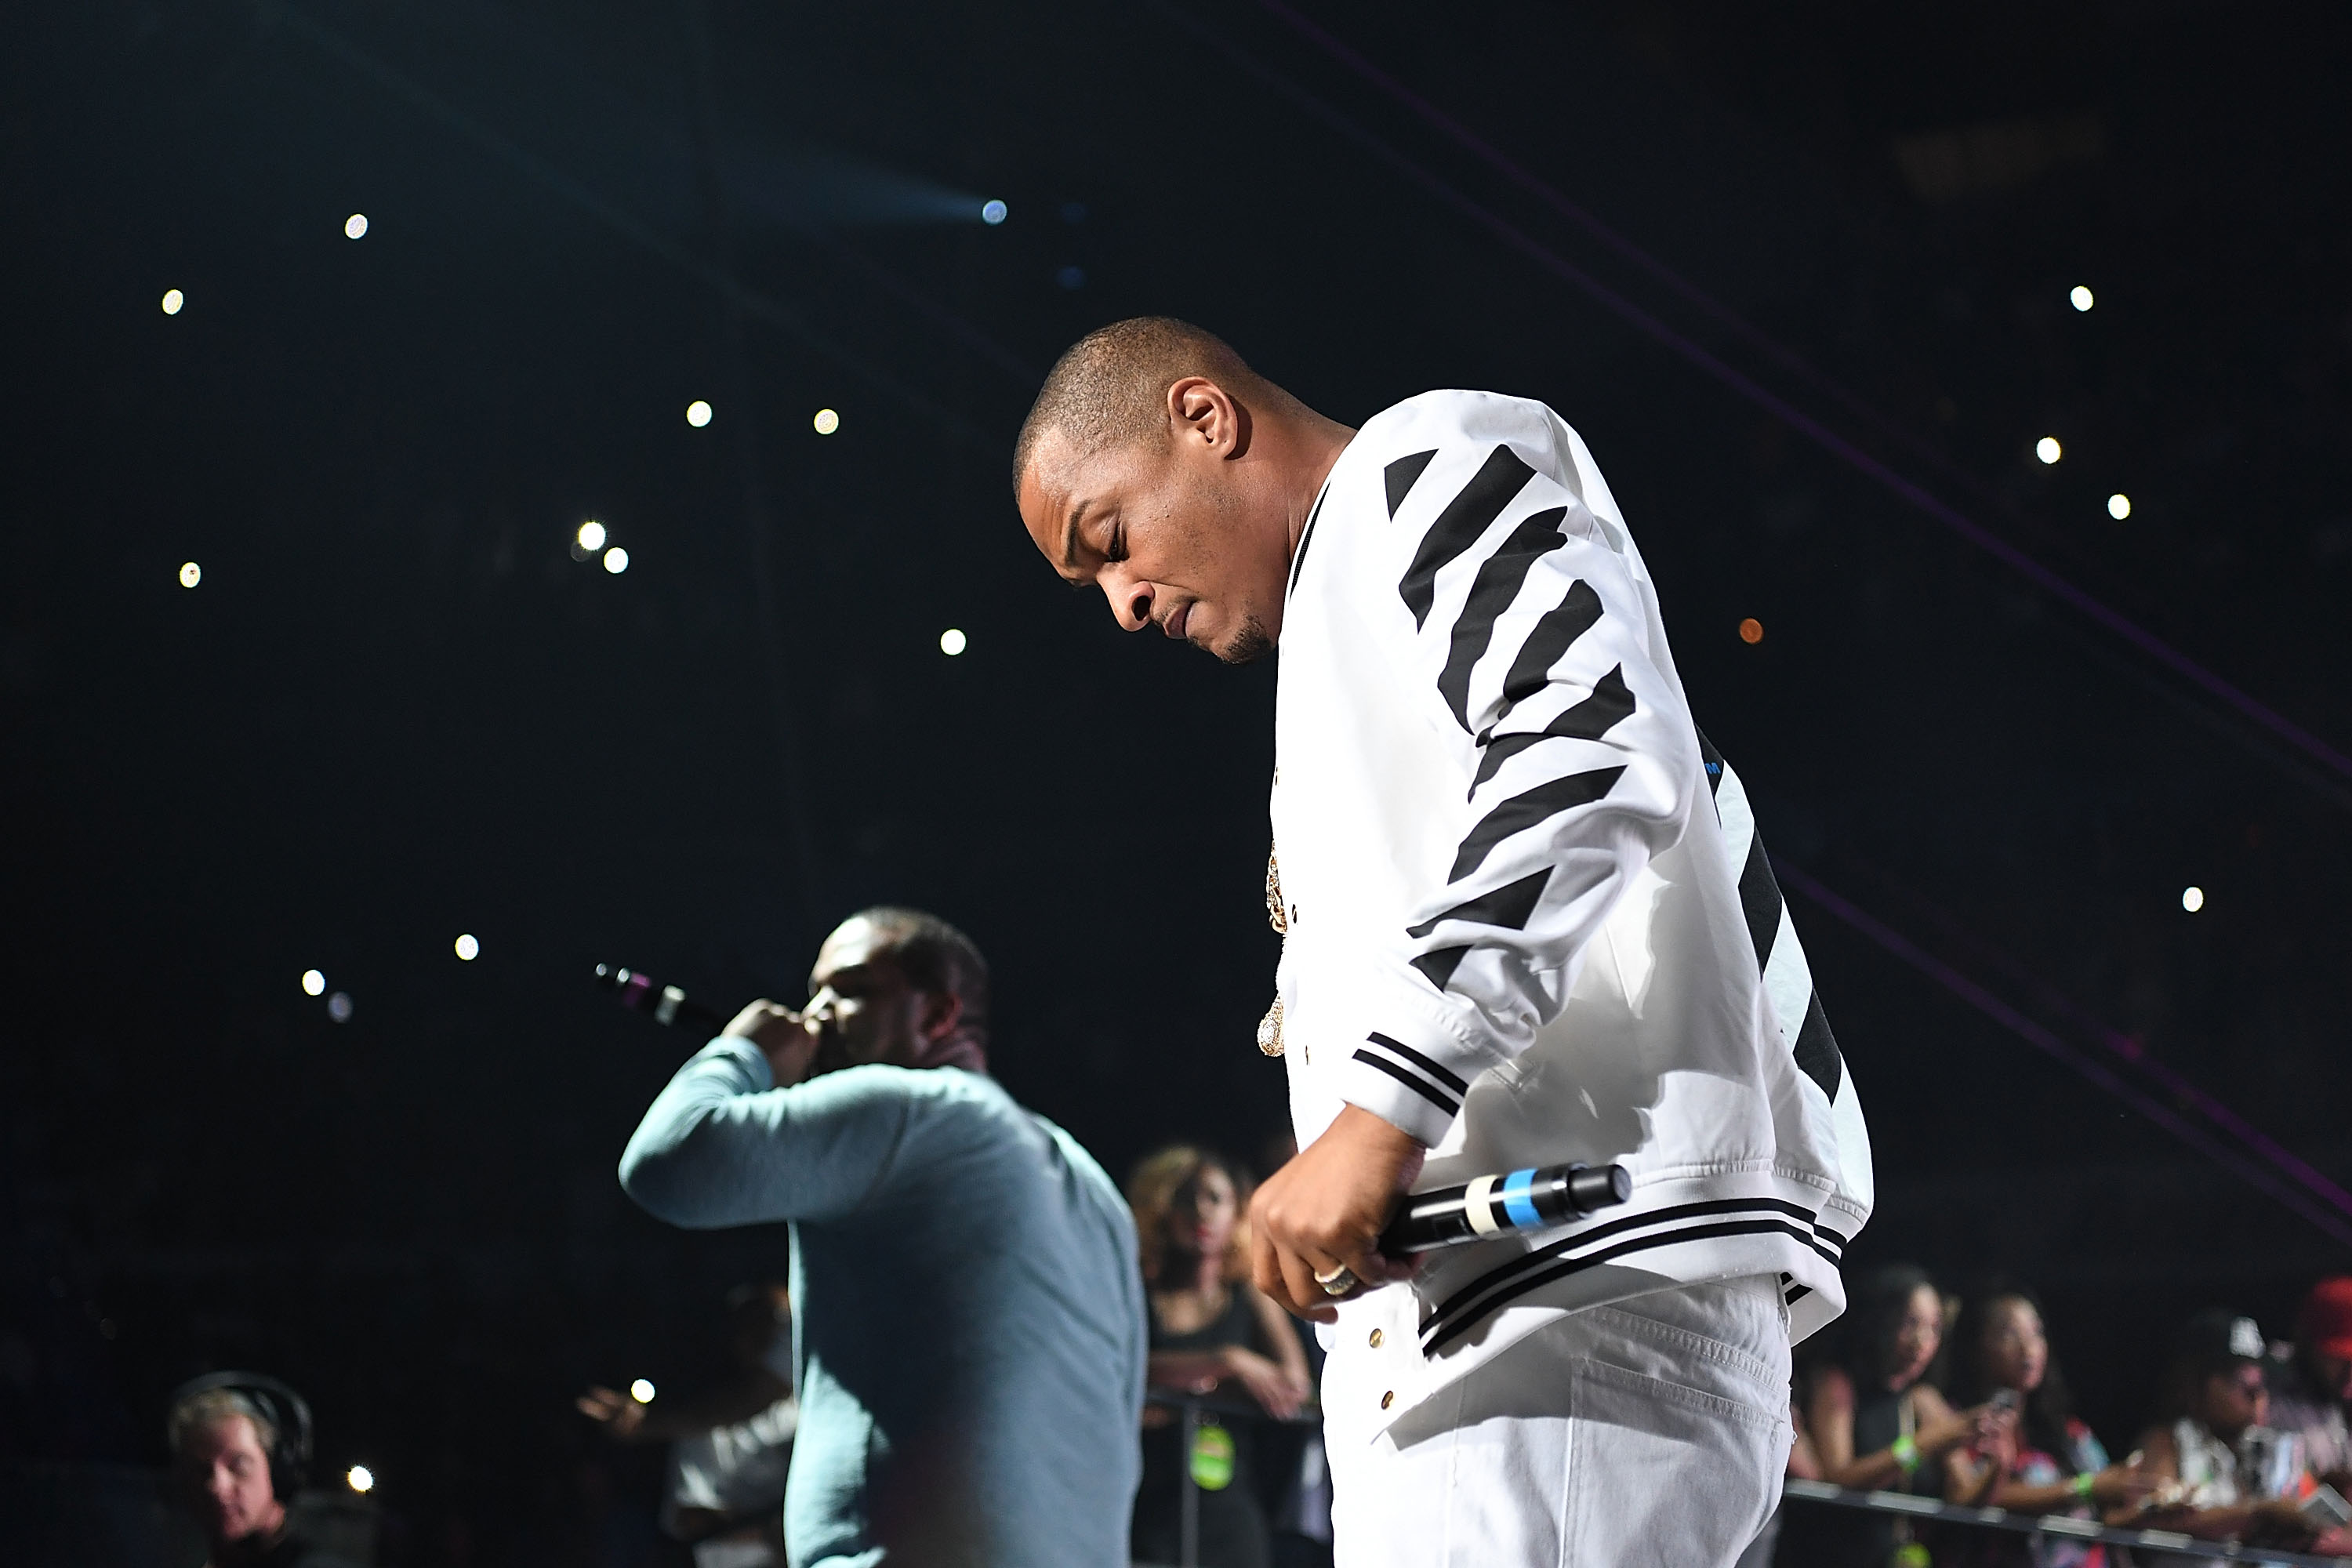 Rapper T.I. performs onstage at Hot 107.9 Birthday Bash at Philips Arena on June 18, 2016 in Atlanta, Georgia.